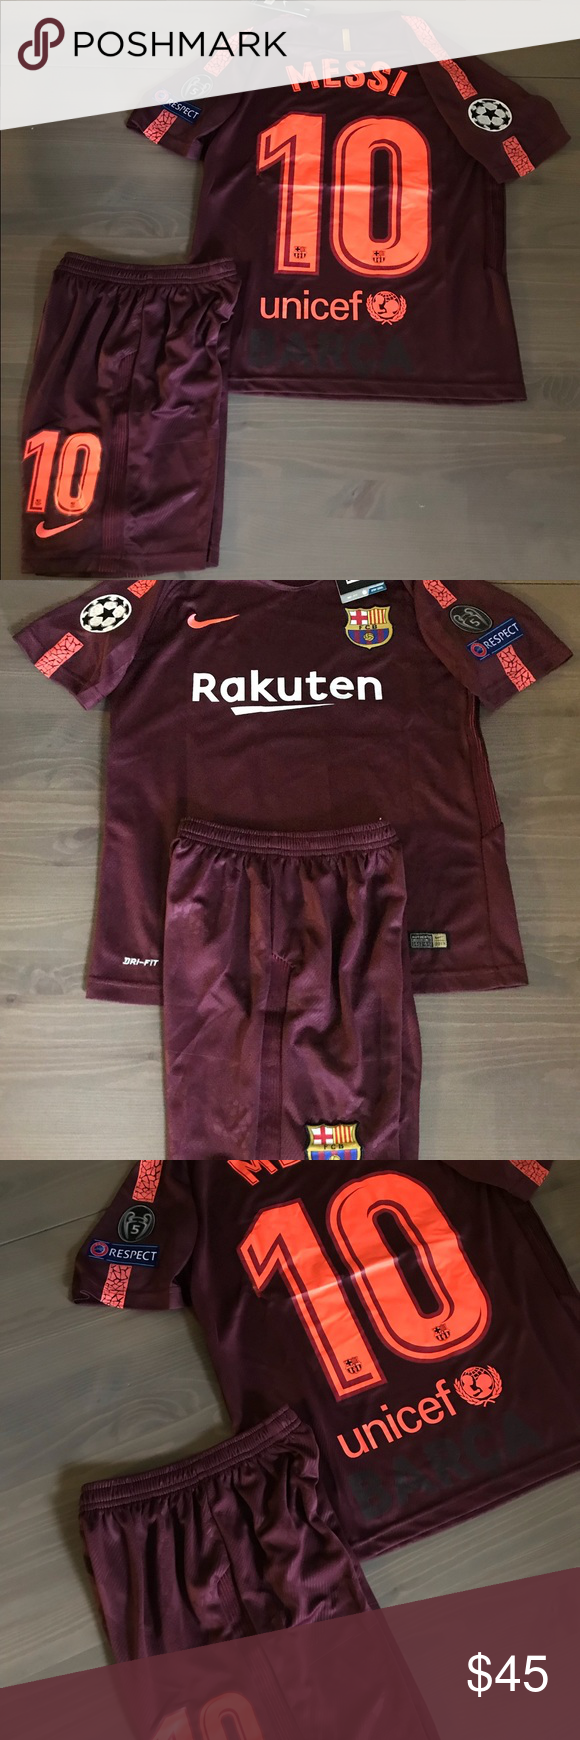 finest selection 43ec4 08e3f Kids kit Barcelona burgundy Messi #10 nike soccer Kids kit ...